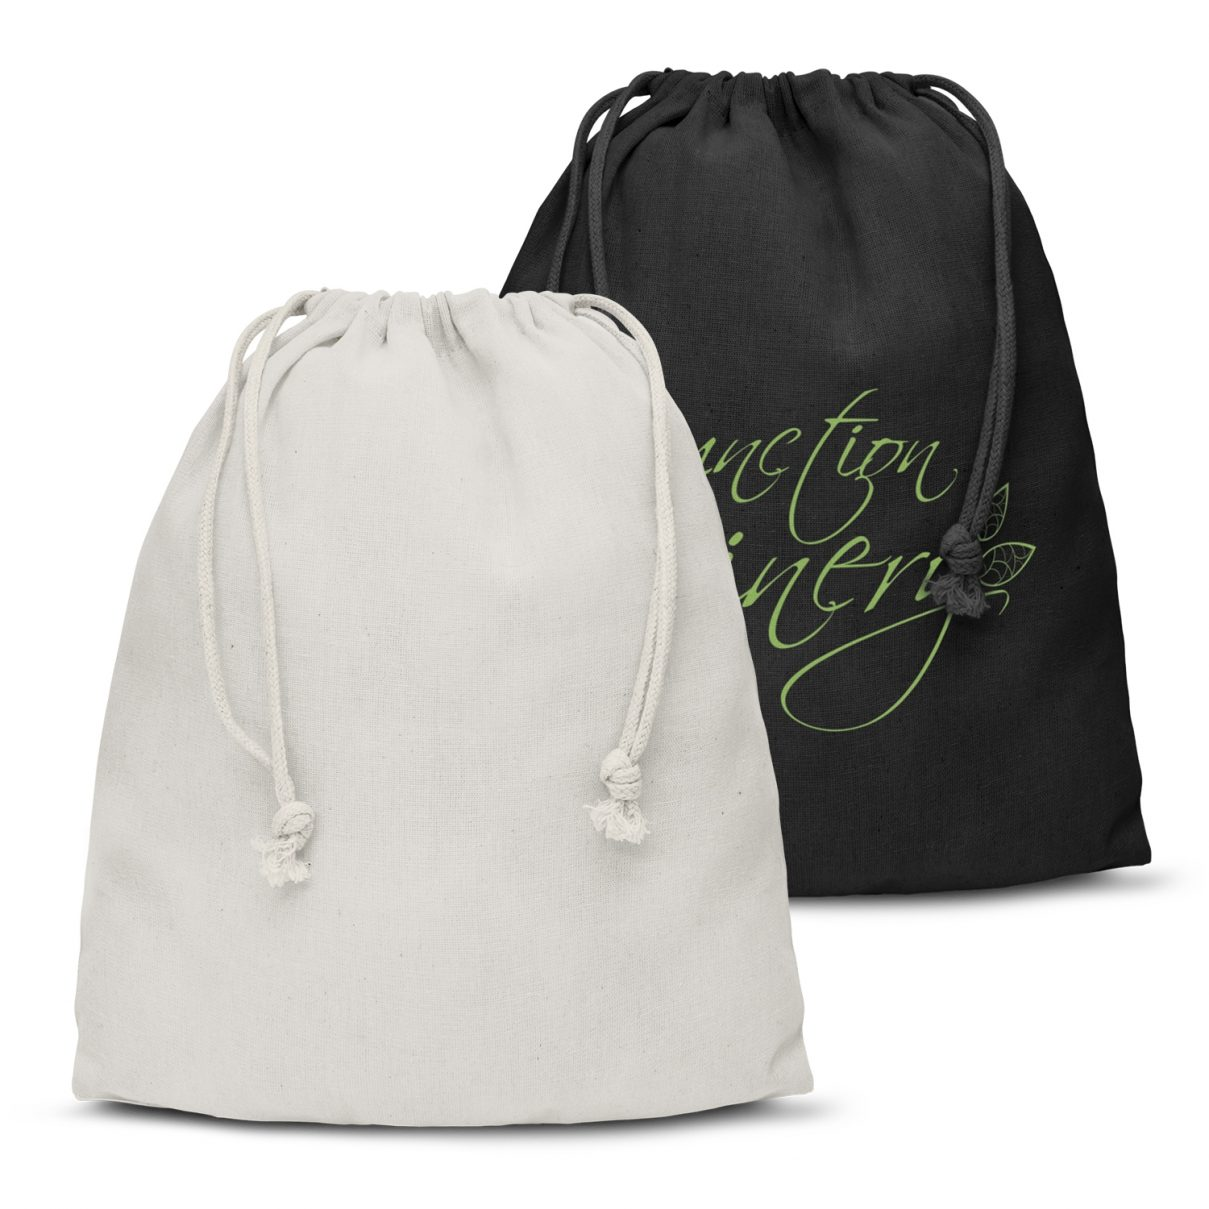 Cotton Gift Bag - Large Bulk Supplier